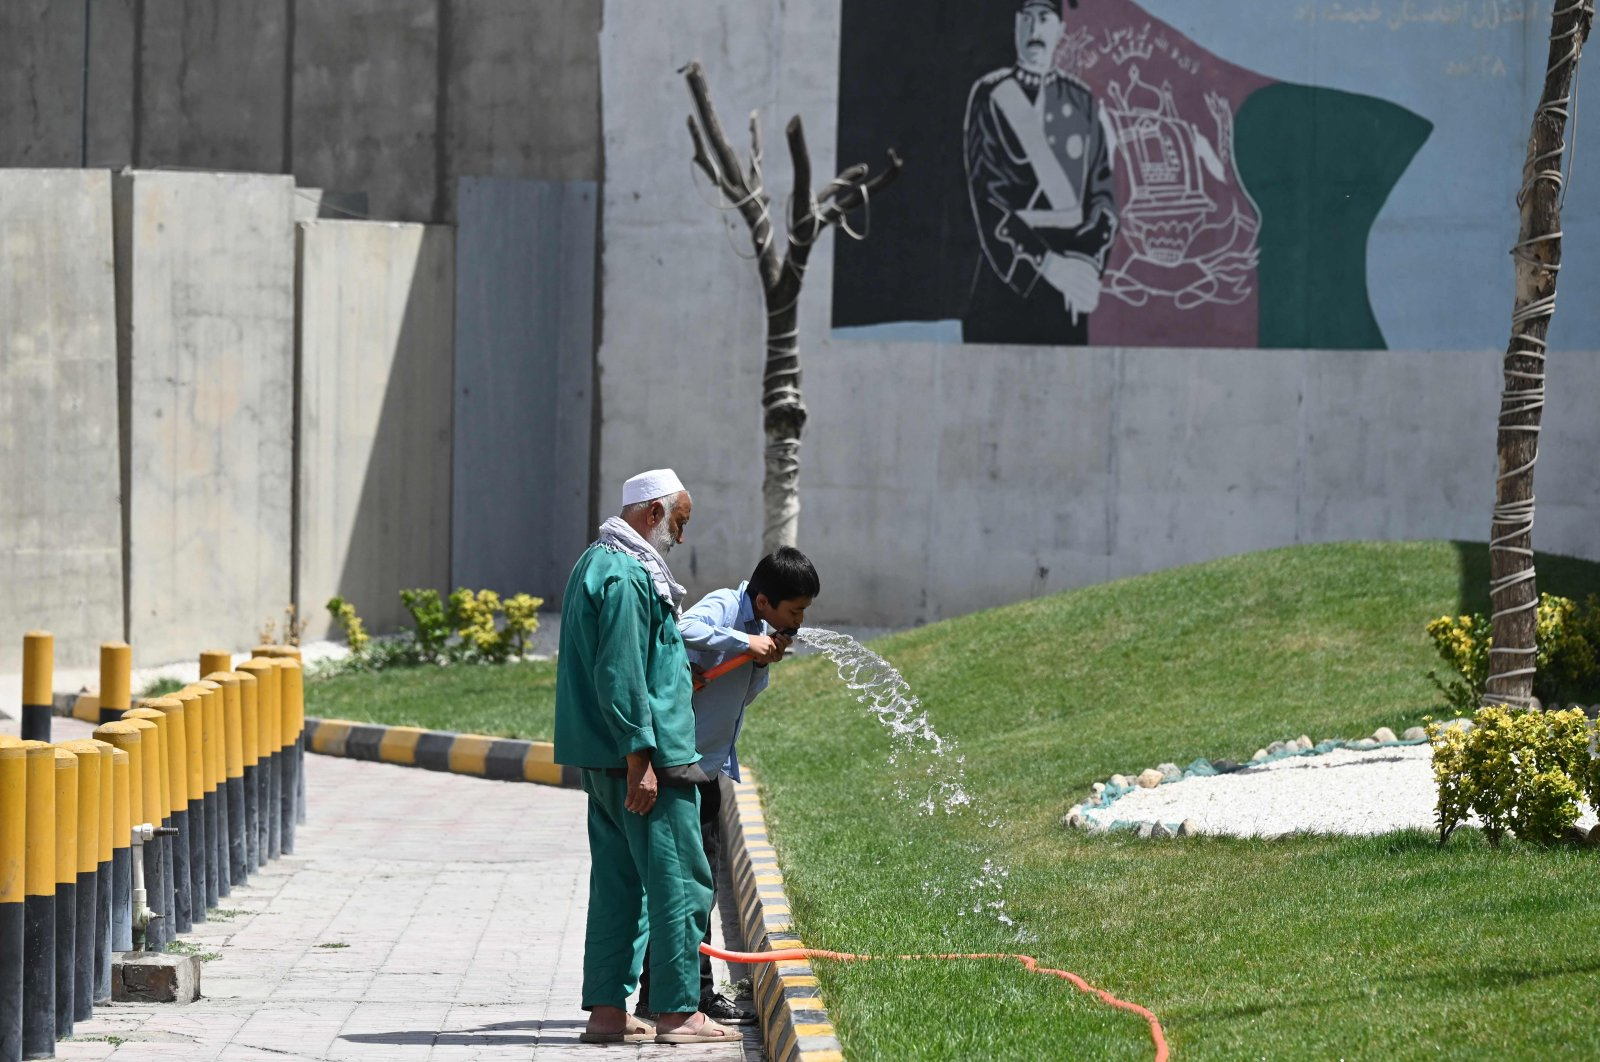 A schoolboy drinks water from a pipe as a gardener looks on, Kabul, Afghanistan, Aug. 5, 2021. (AFP Photo)